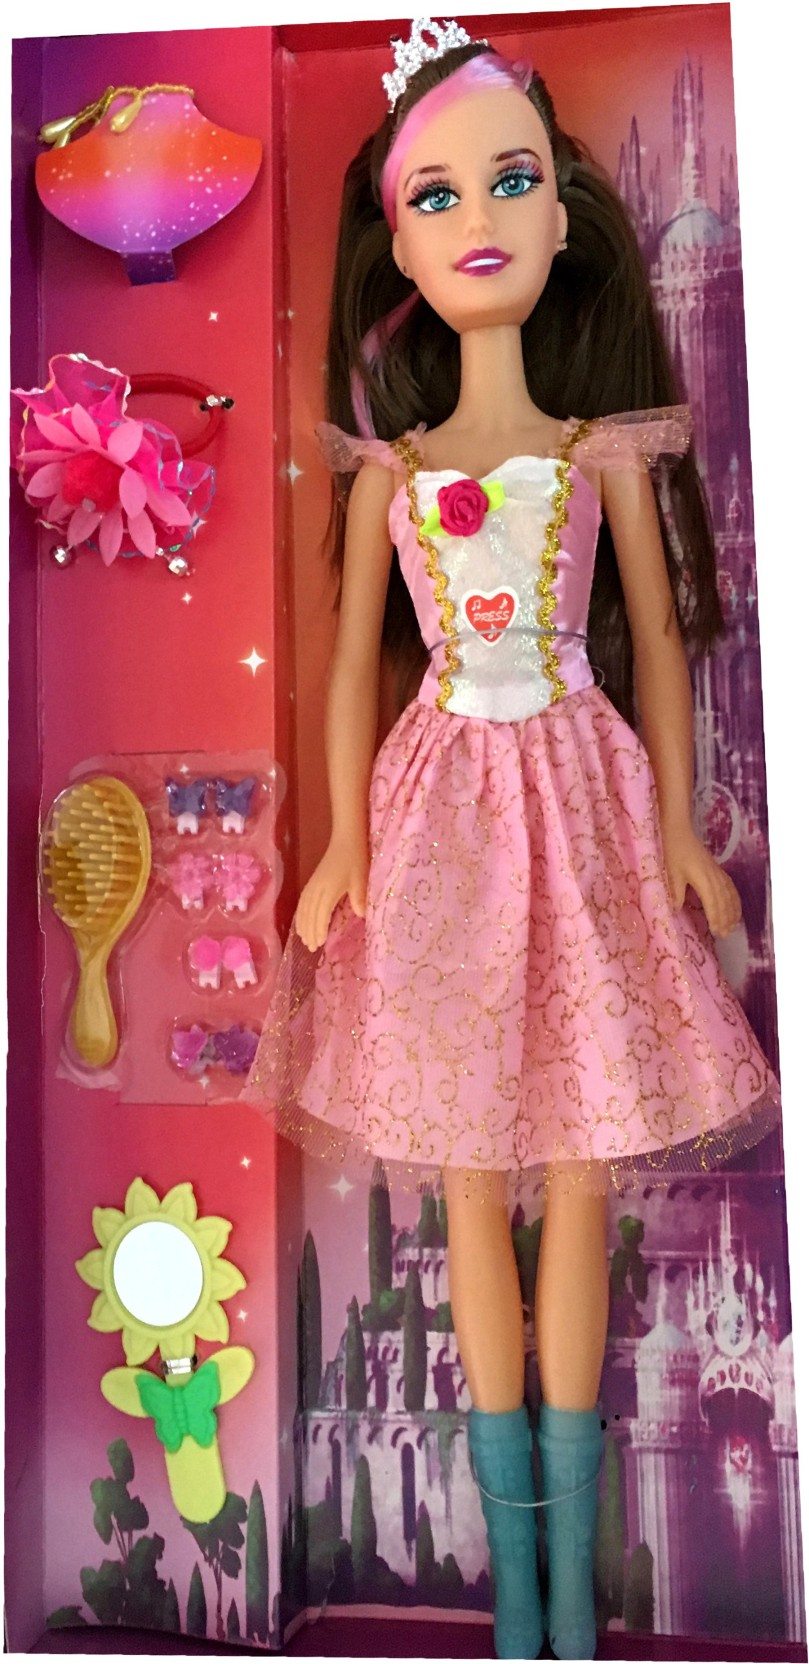 ... Barbie Doll. Share